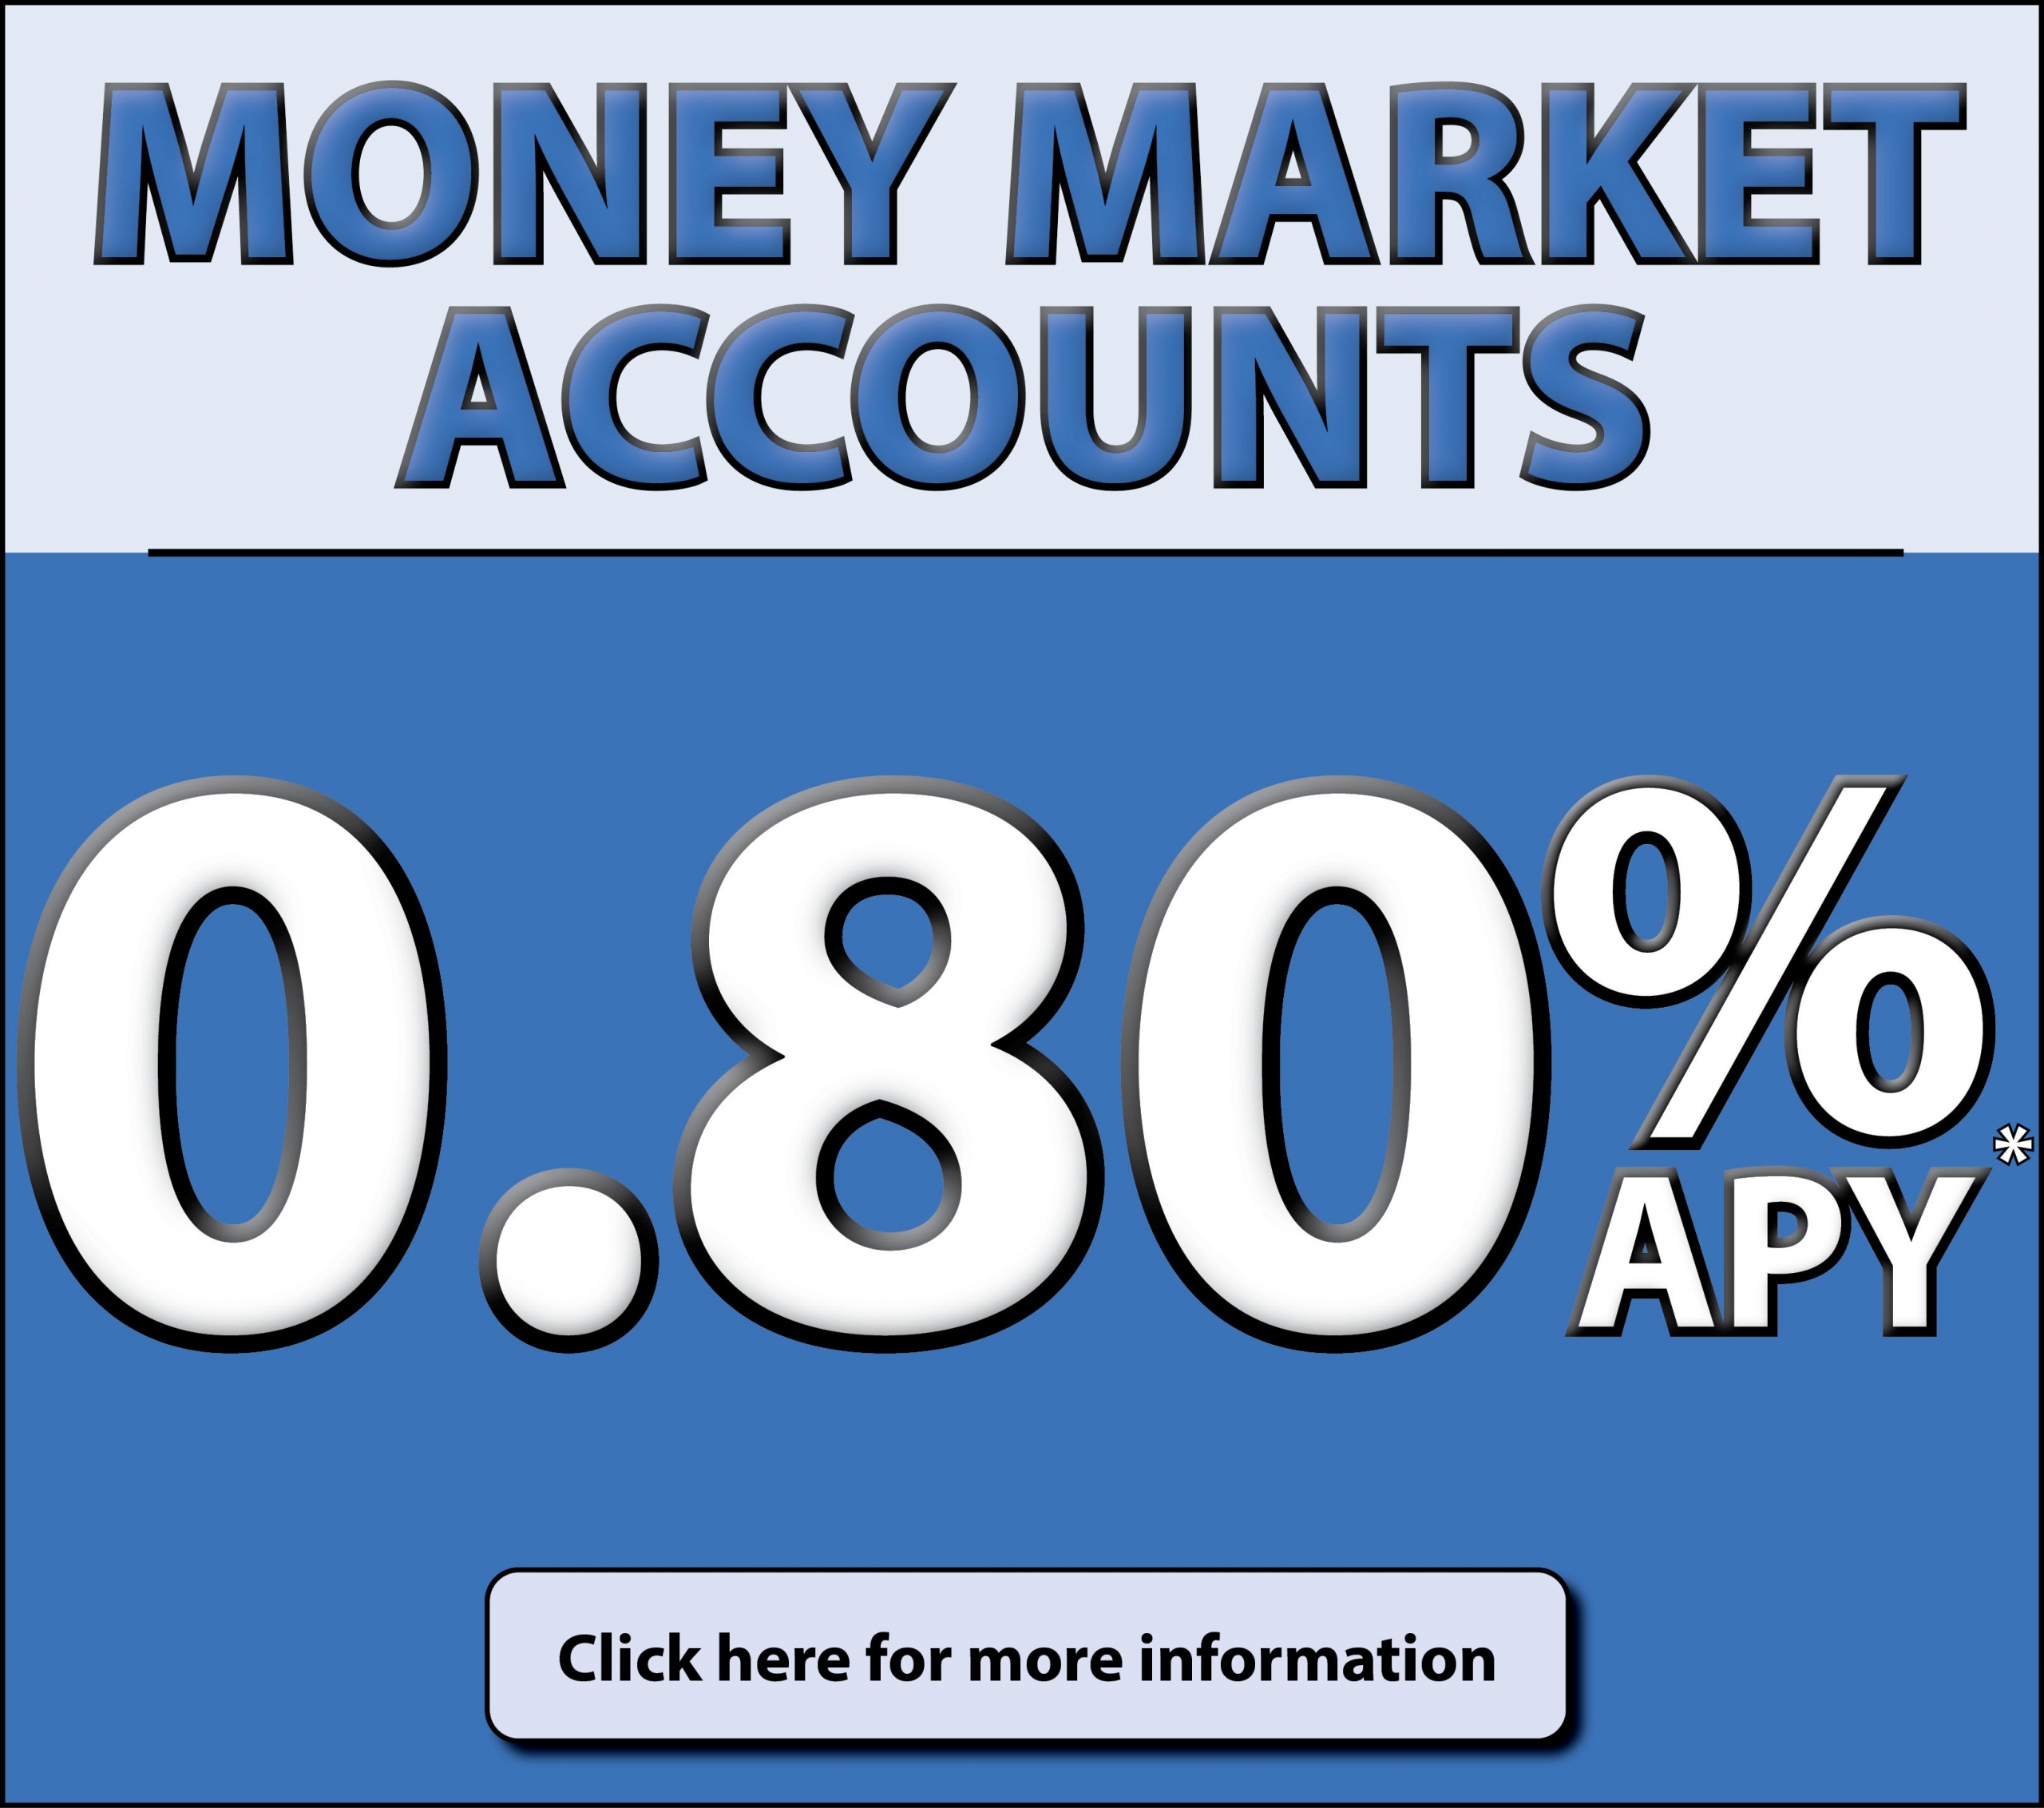 Quaint Oak Bank Consumer Money Market Accounts, 0.80% APY*